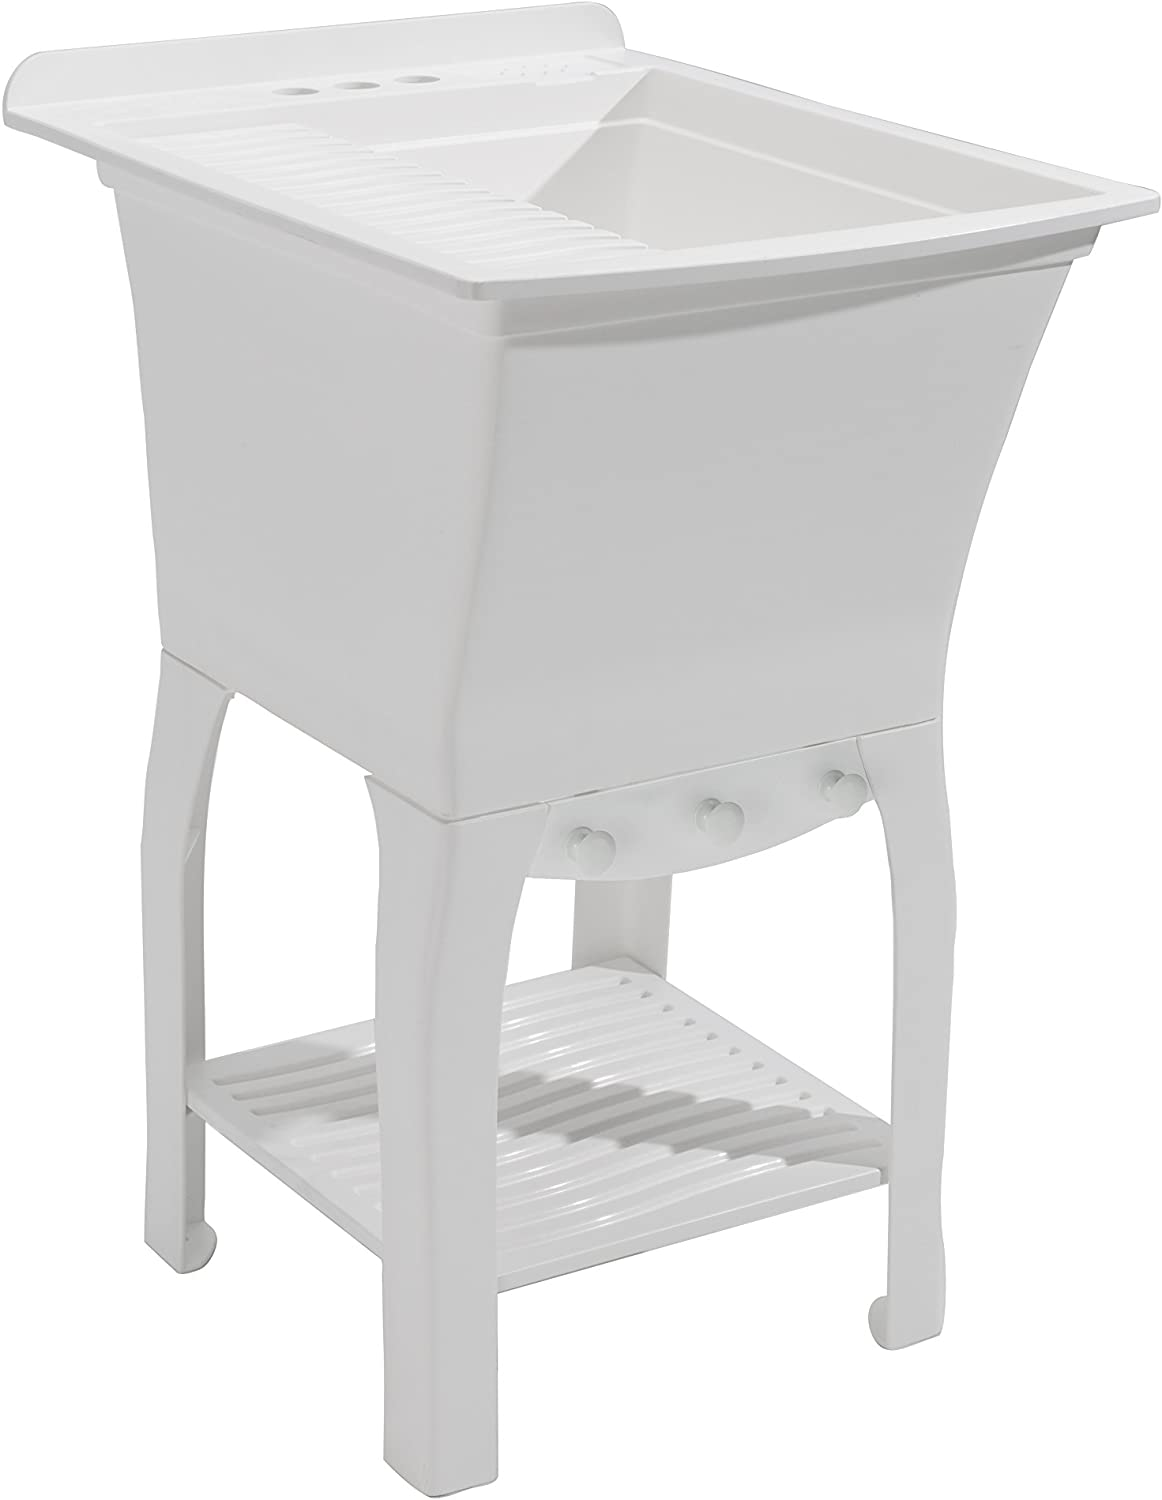 Whitehaus WHQDB332-WH Farmhaus Quatro Alcove 33-Inch Reversible Double Bowl Fireclay Sink with Fluted Front Apron, White